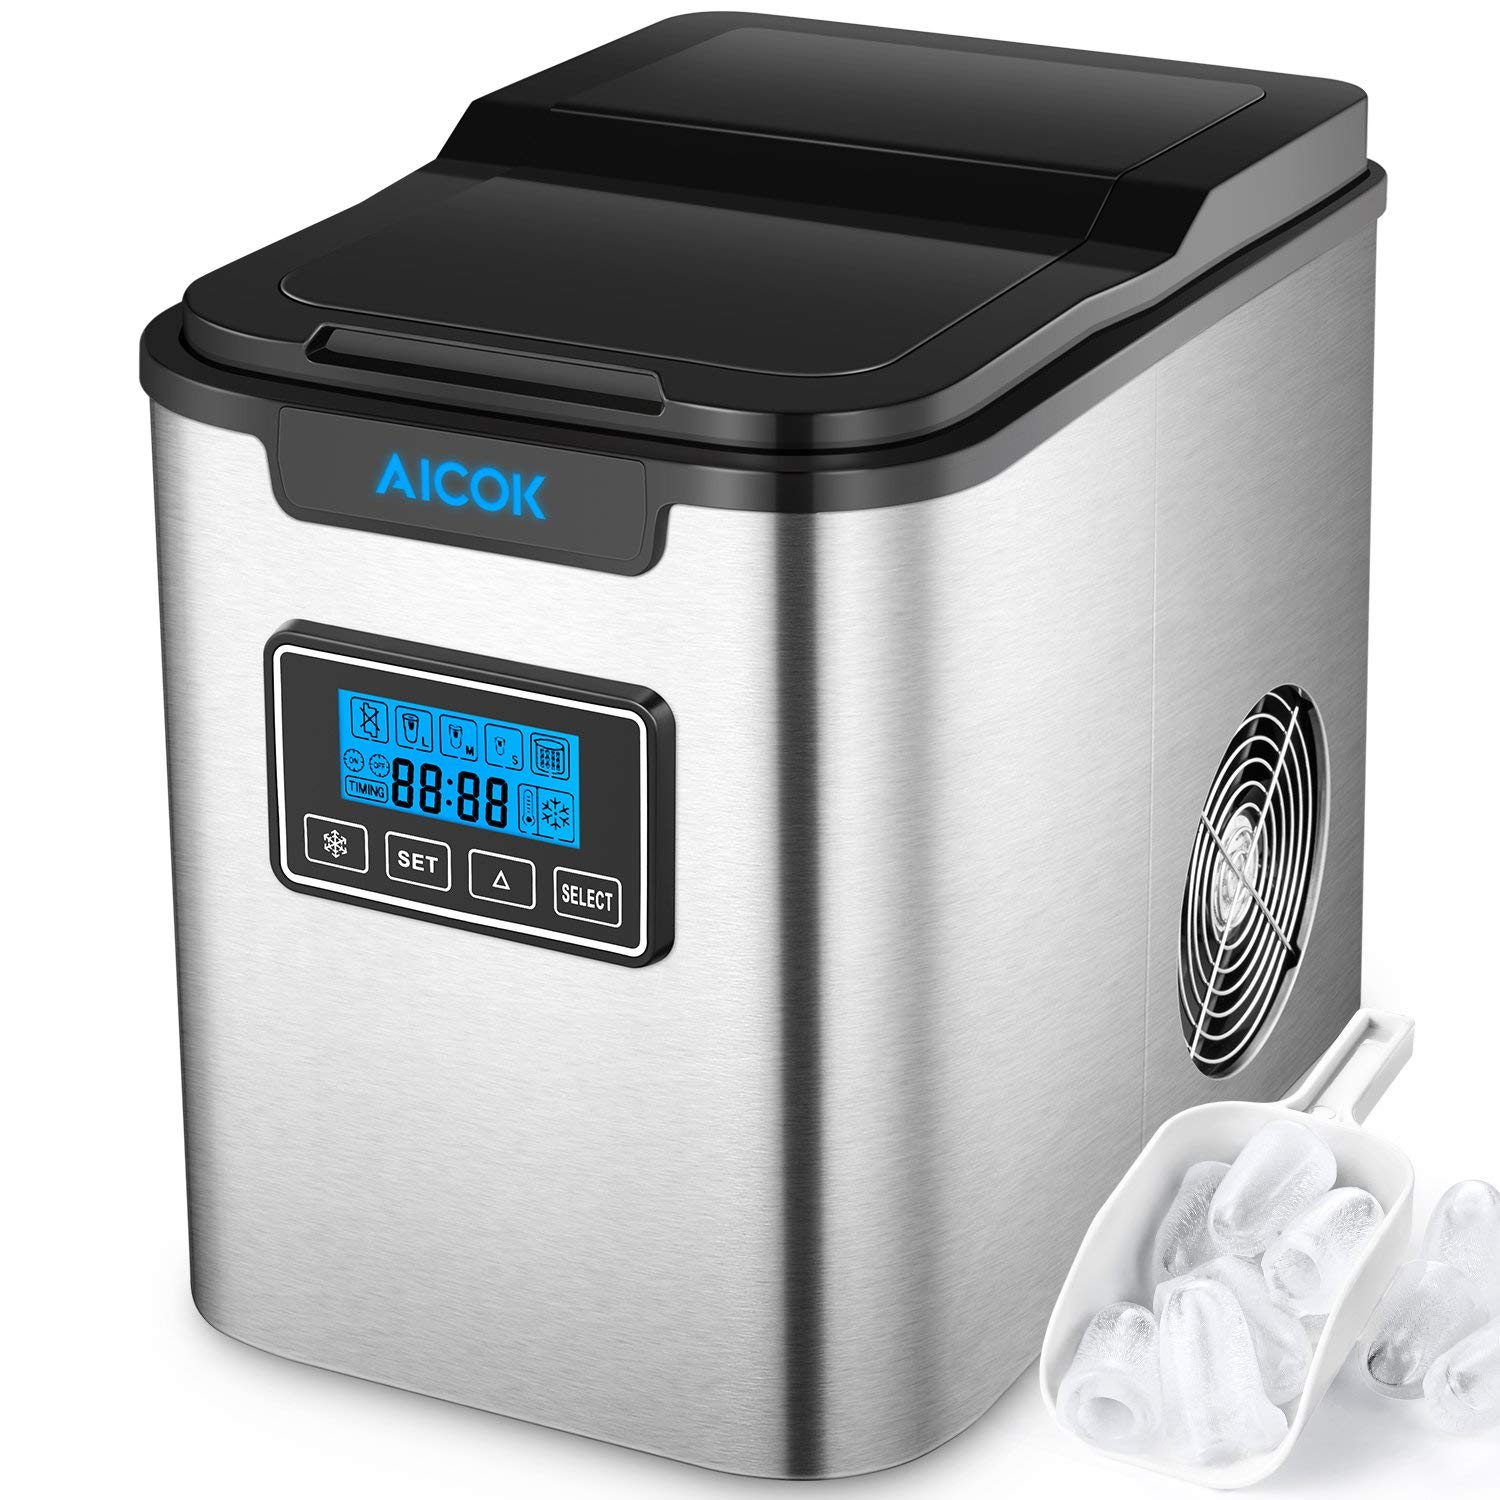 Aicok Portable Ice Maker 26lbs Countertop Ice Machine